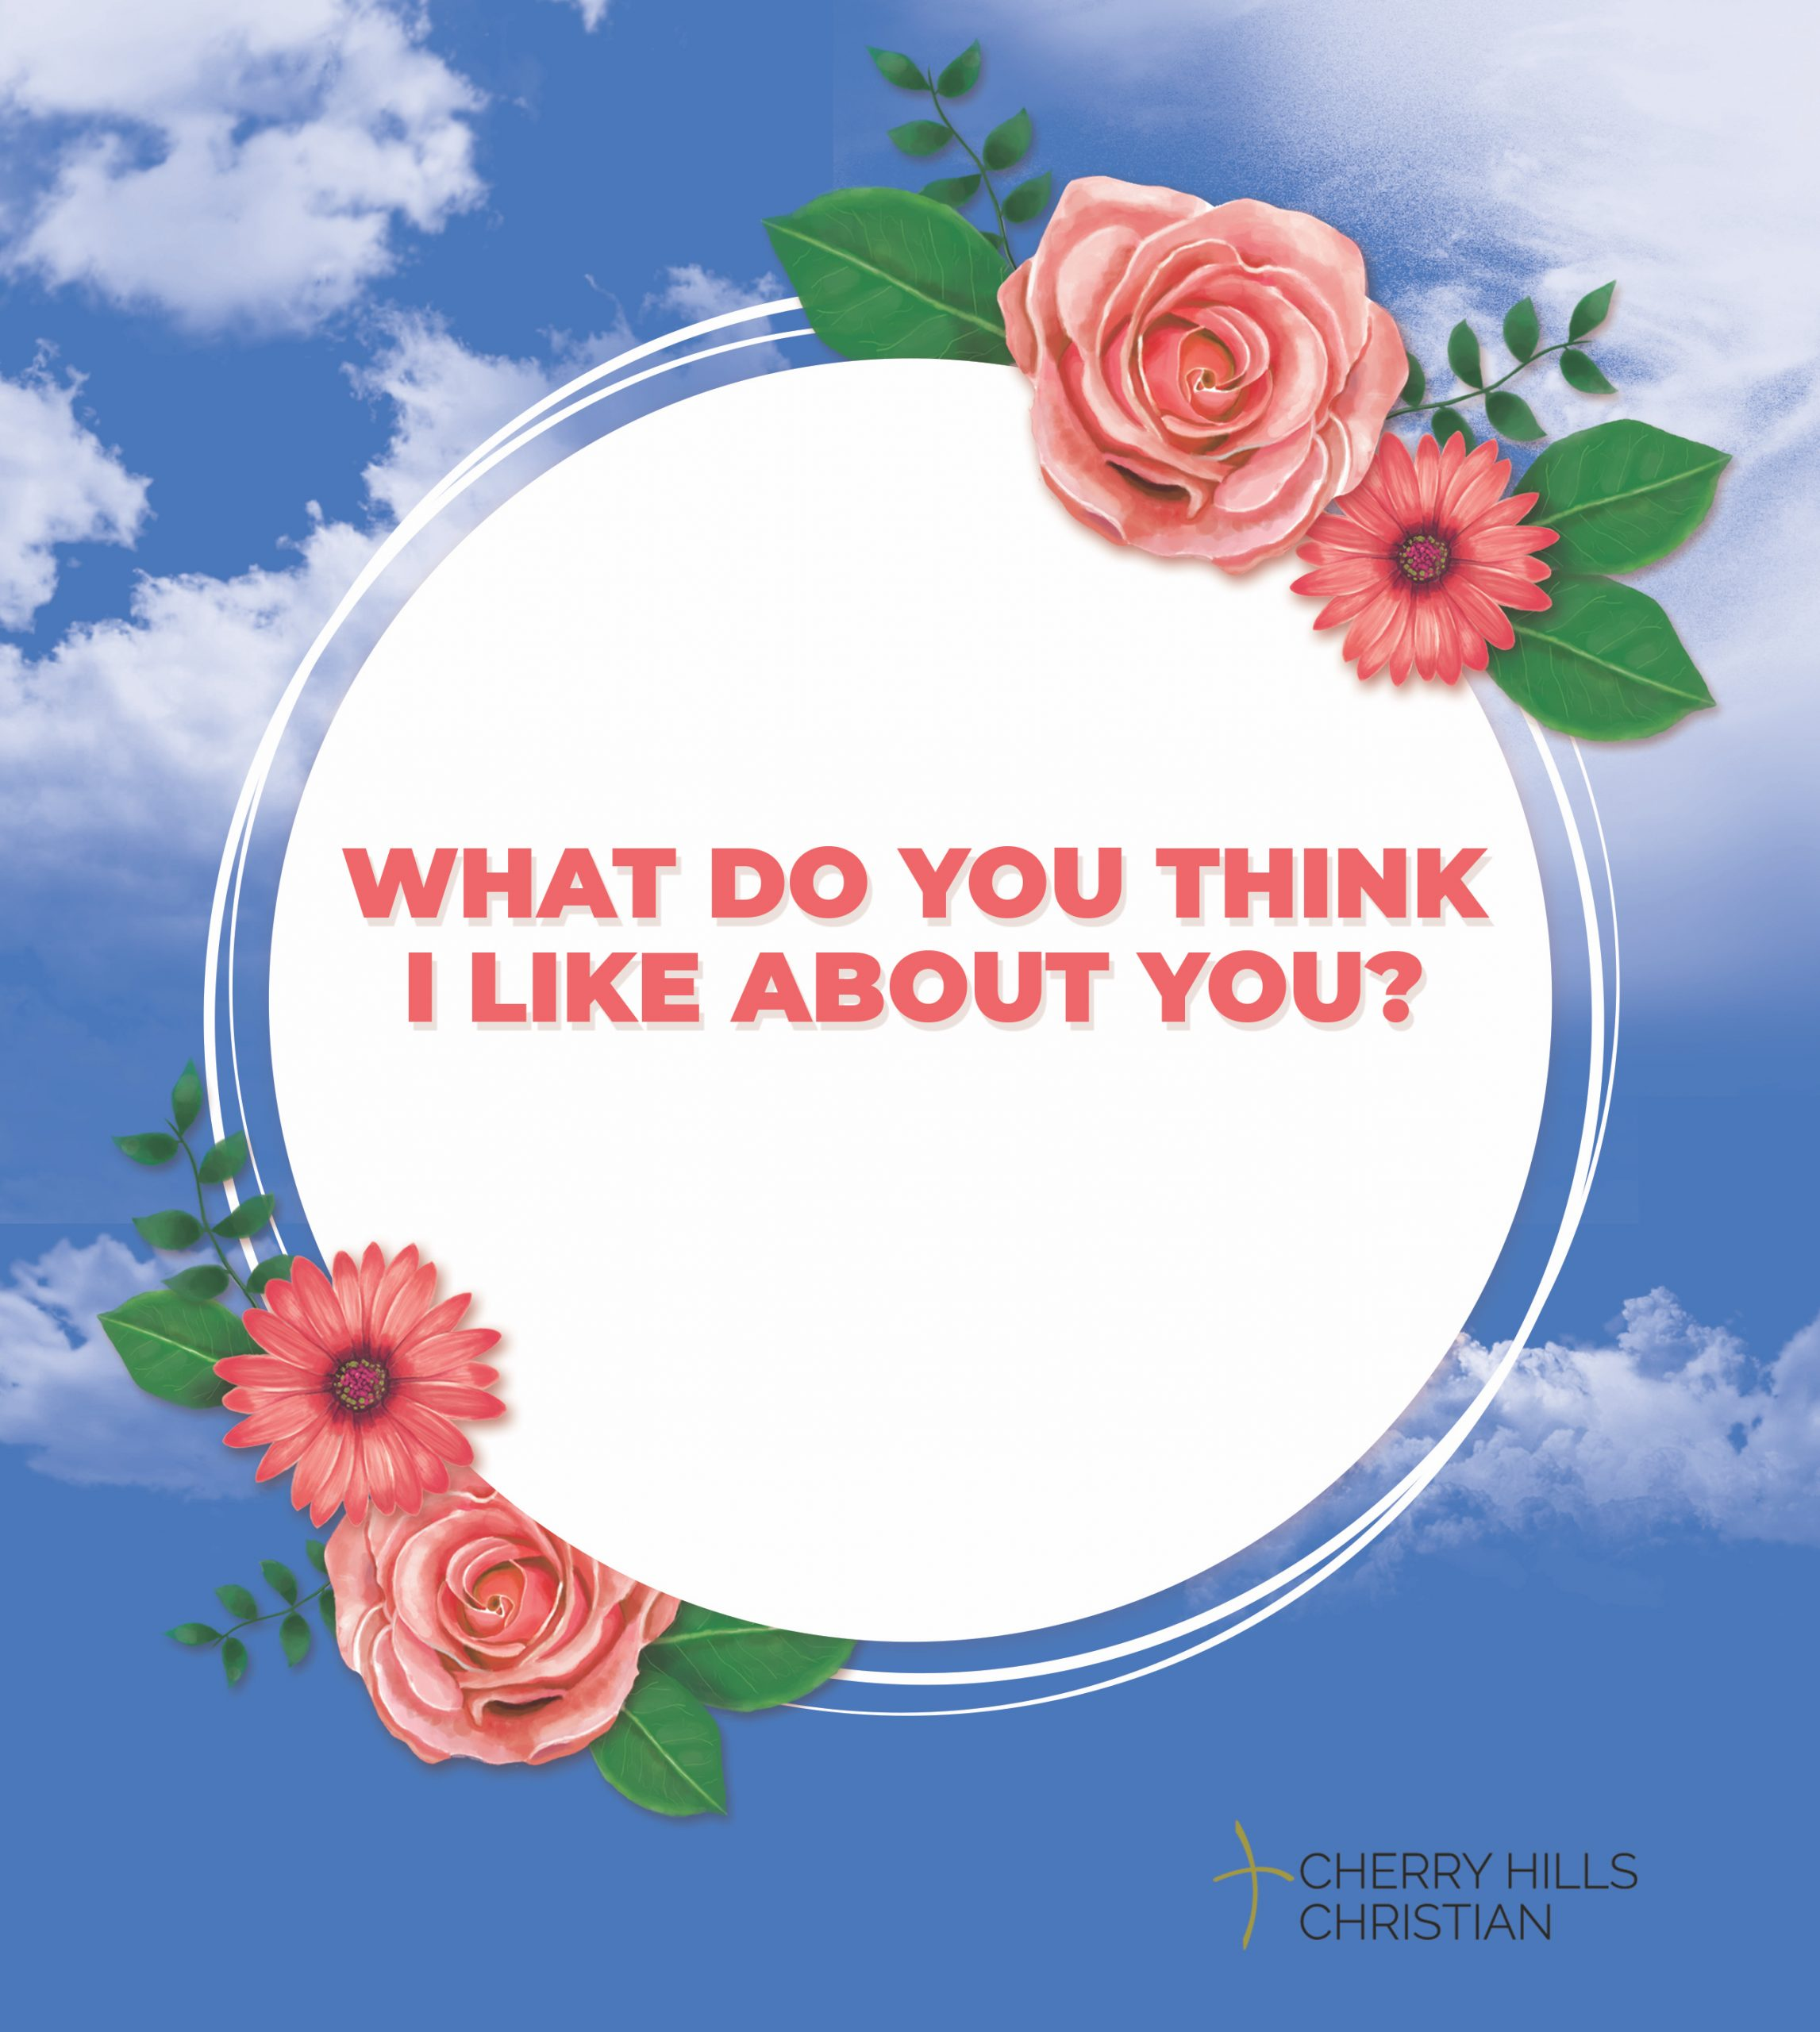 What do you think I like about you?